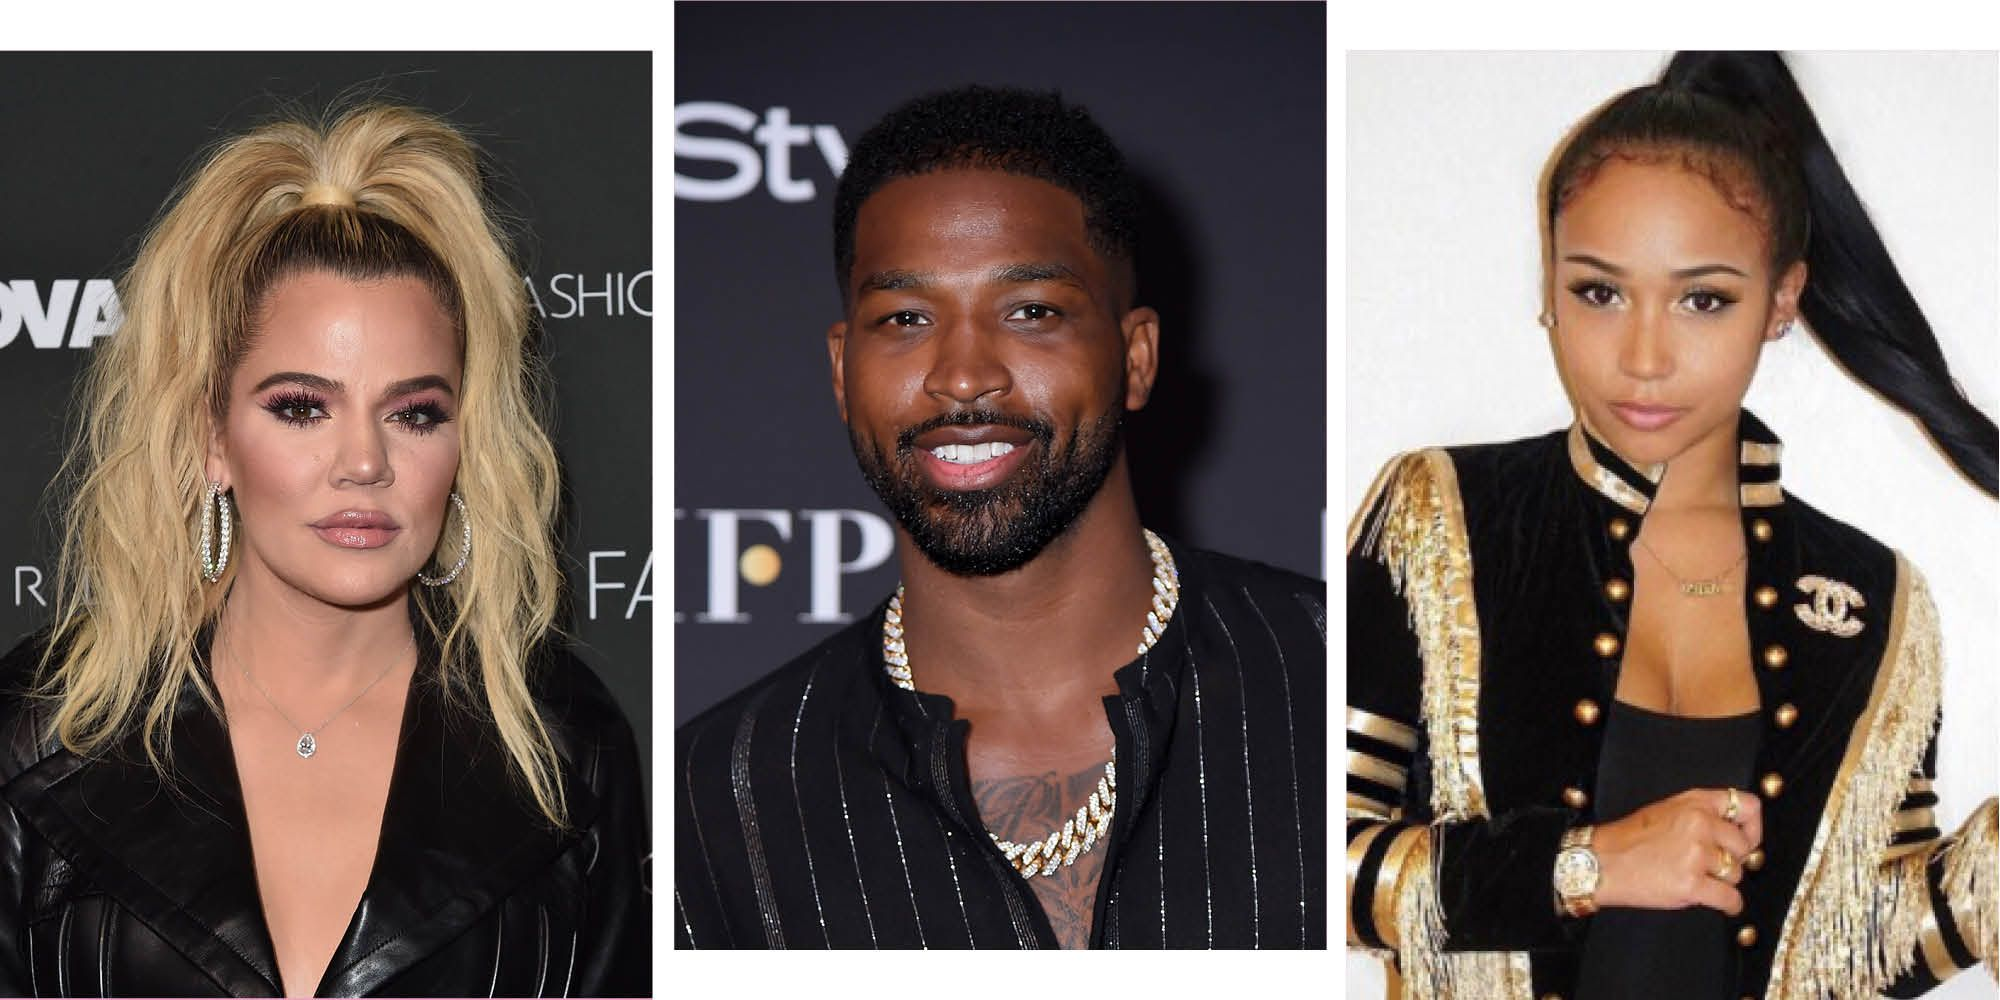 Khloe Kardashian on rumours she rubbed her relationship in Tristan Thompson's ex's face